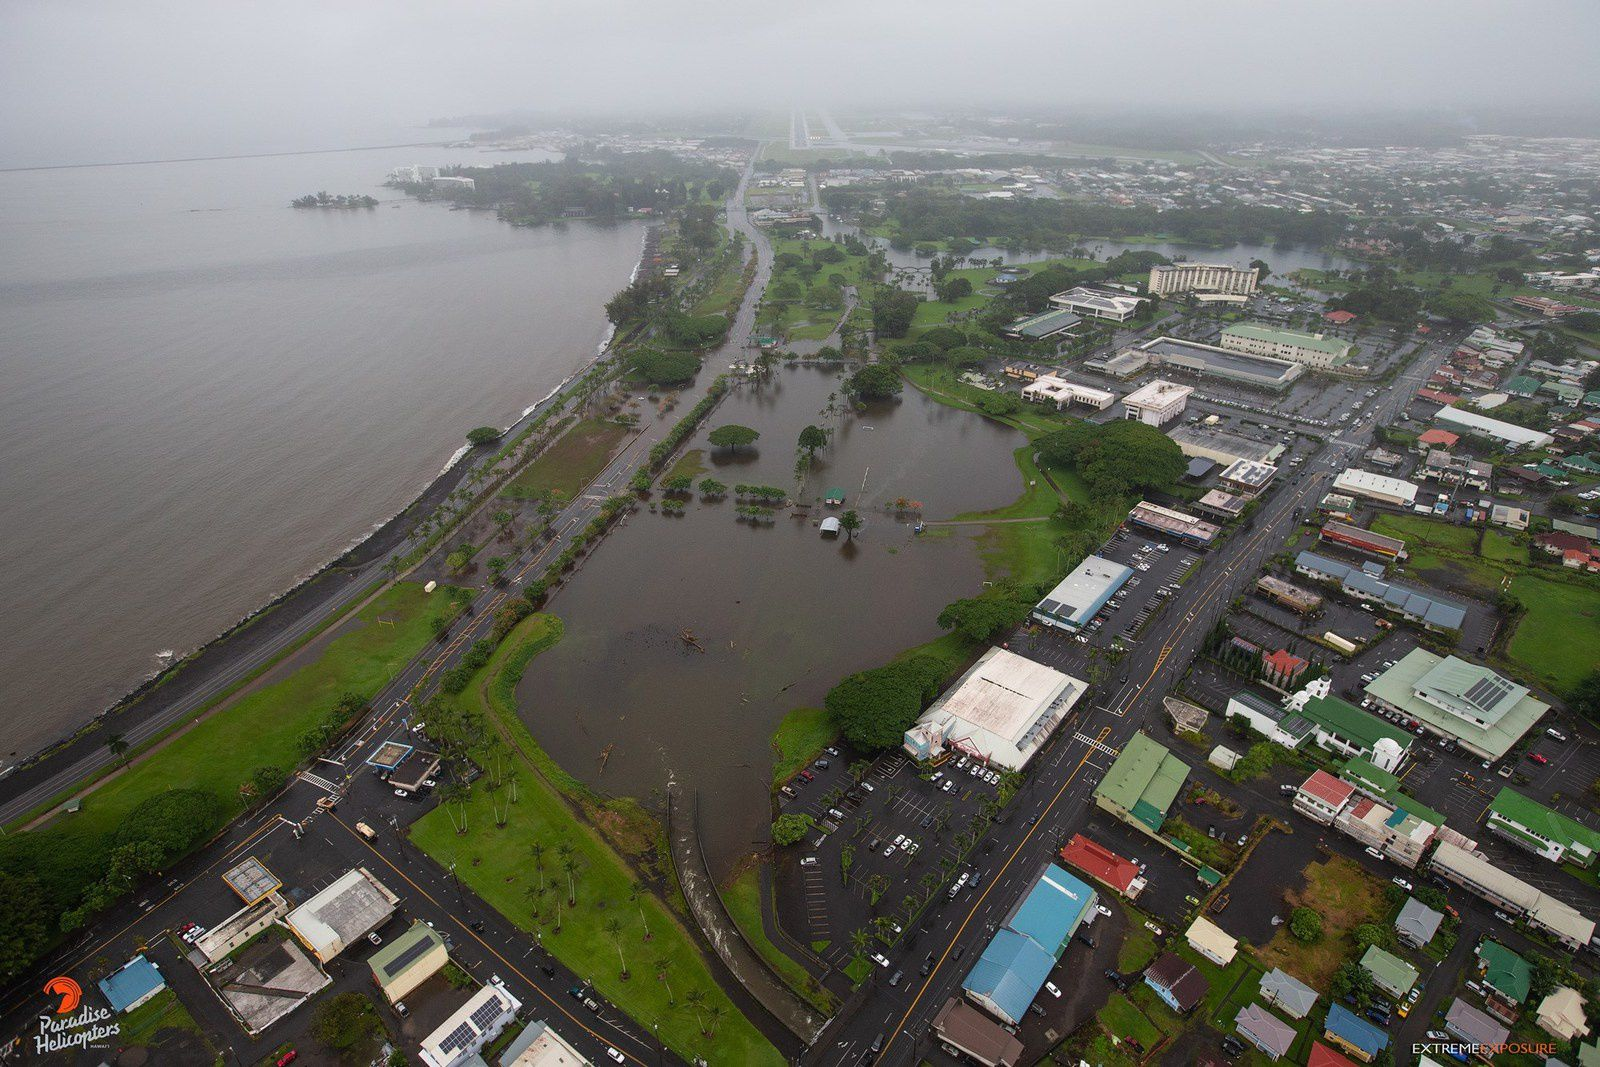 Hawaii - Floods on Hilo after Lane storm - Photo Paradise Helicopters 26.08.2018